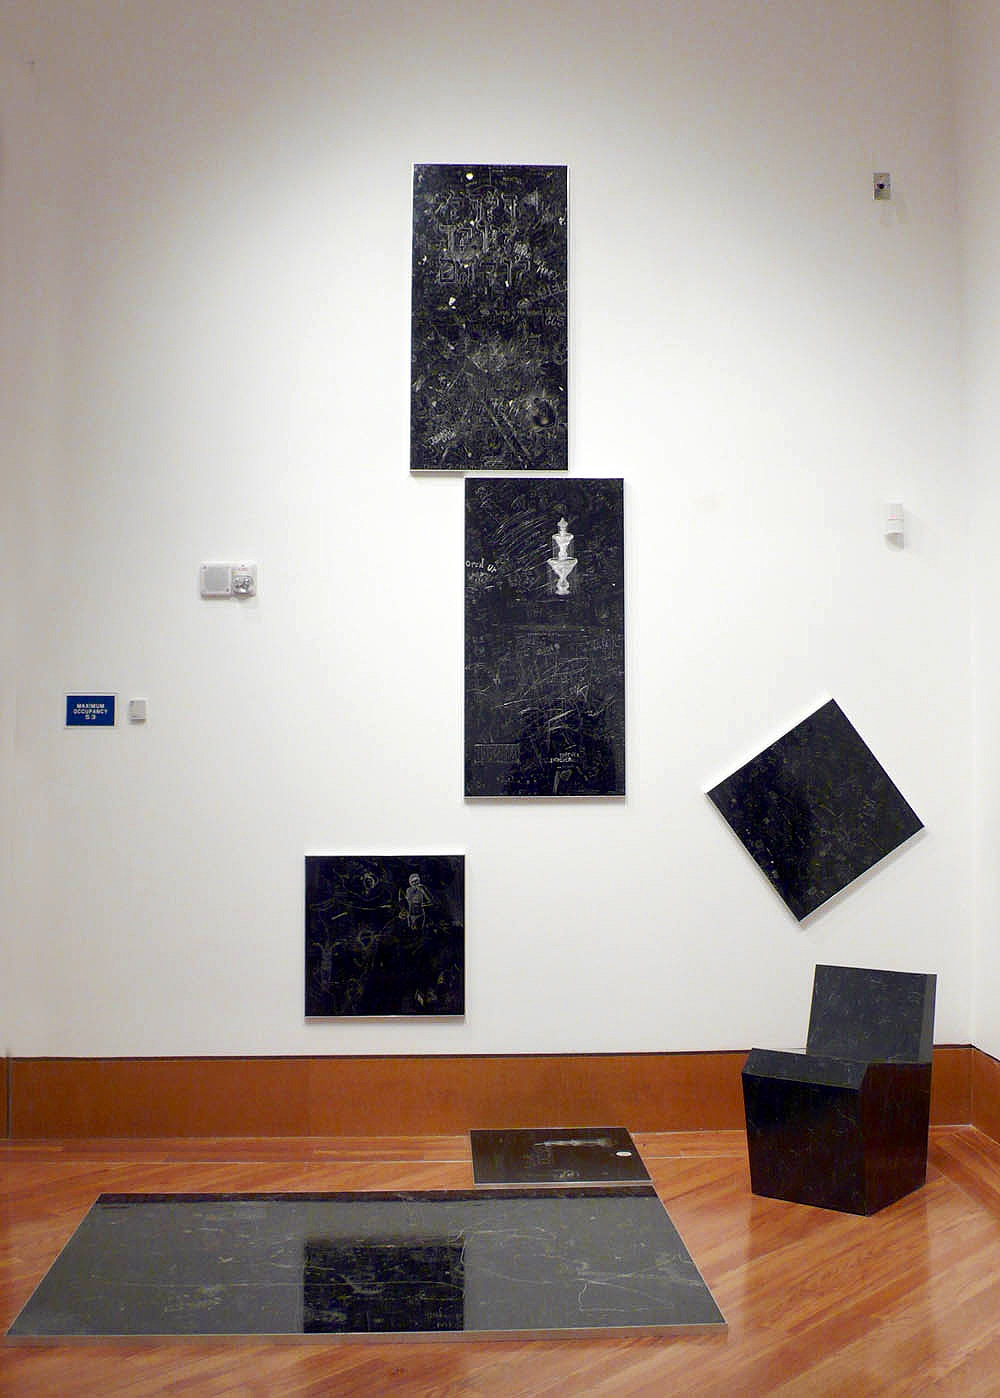 Galaxy 1, P.S., Installation view at the Frost Art Museum, Miami, FL. 2012